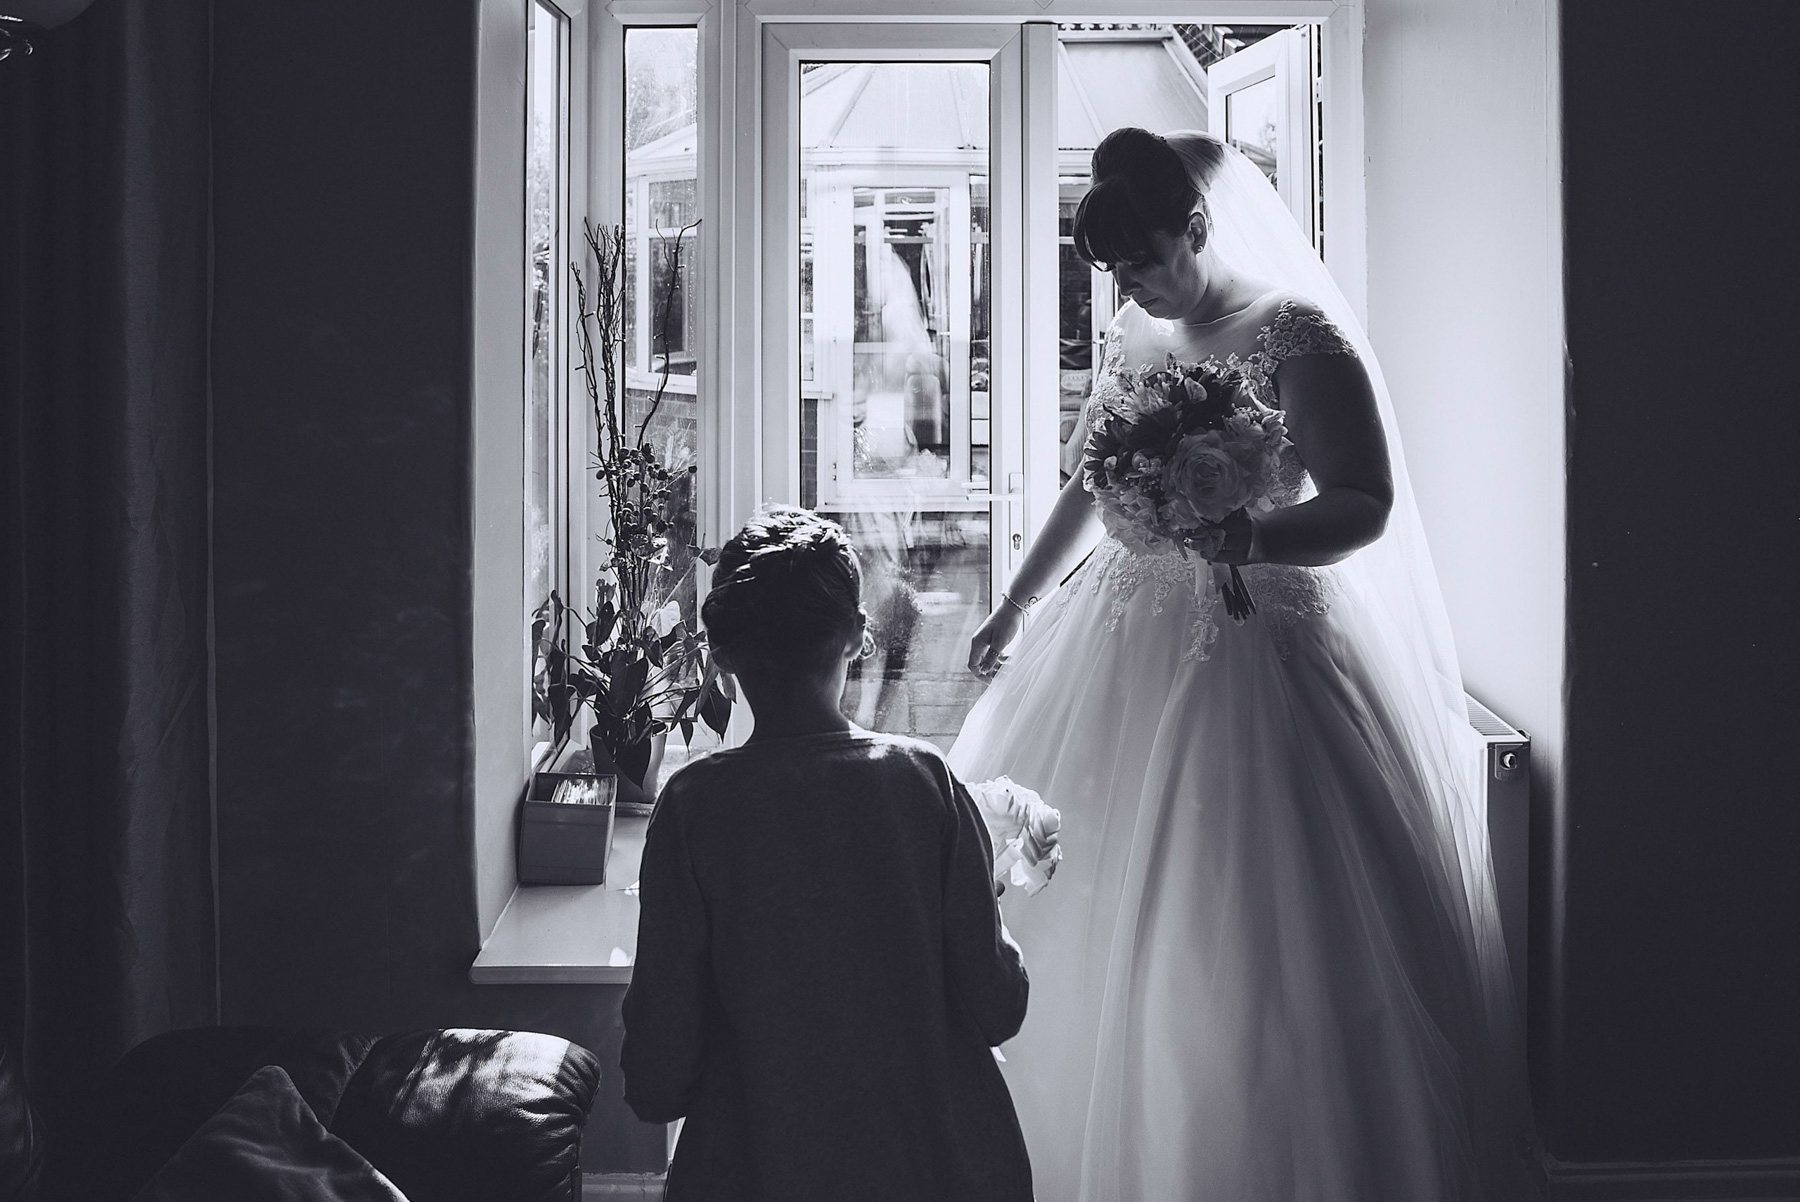 silhouette of daughter and bride